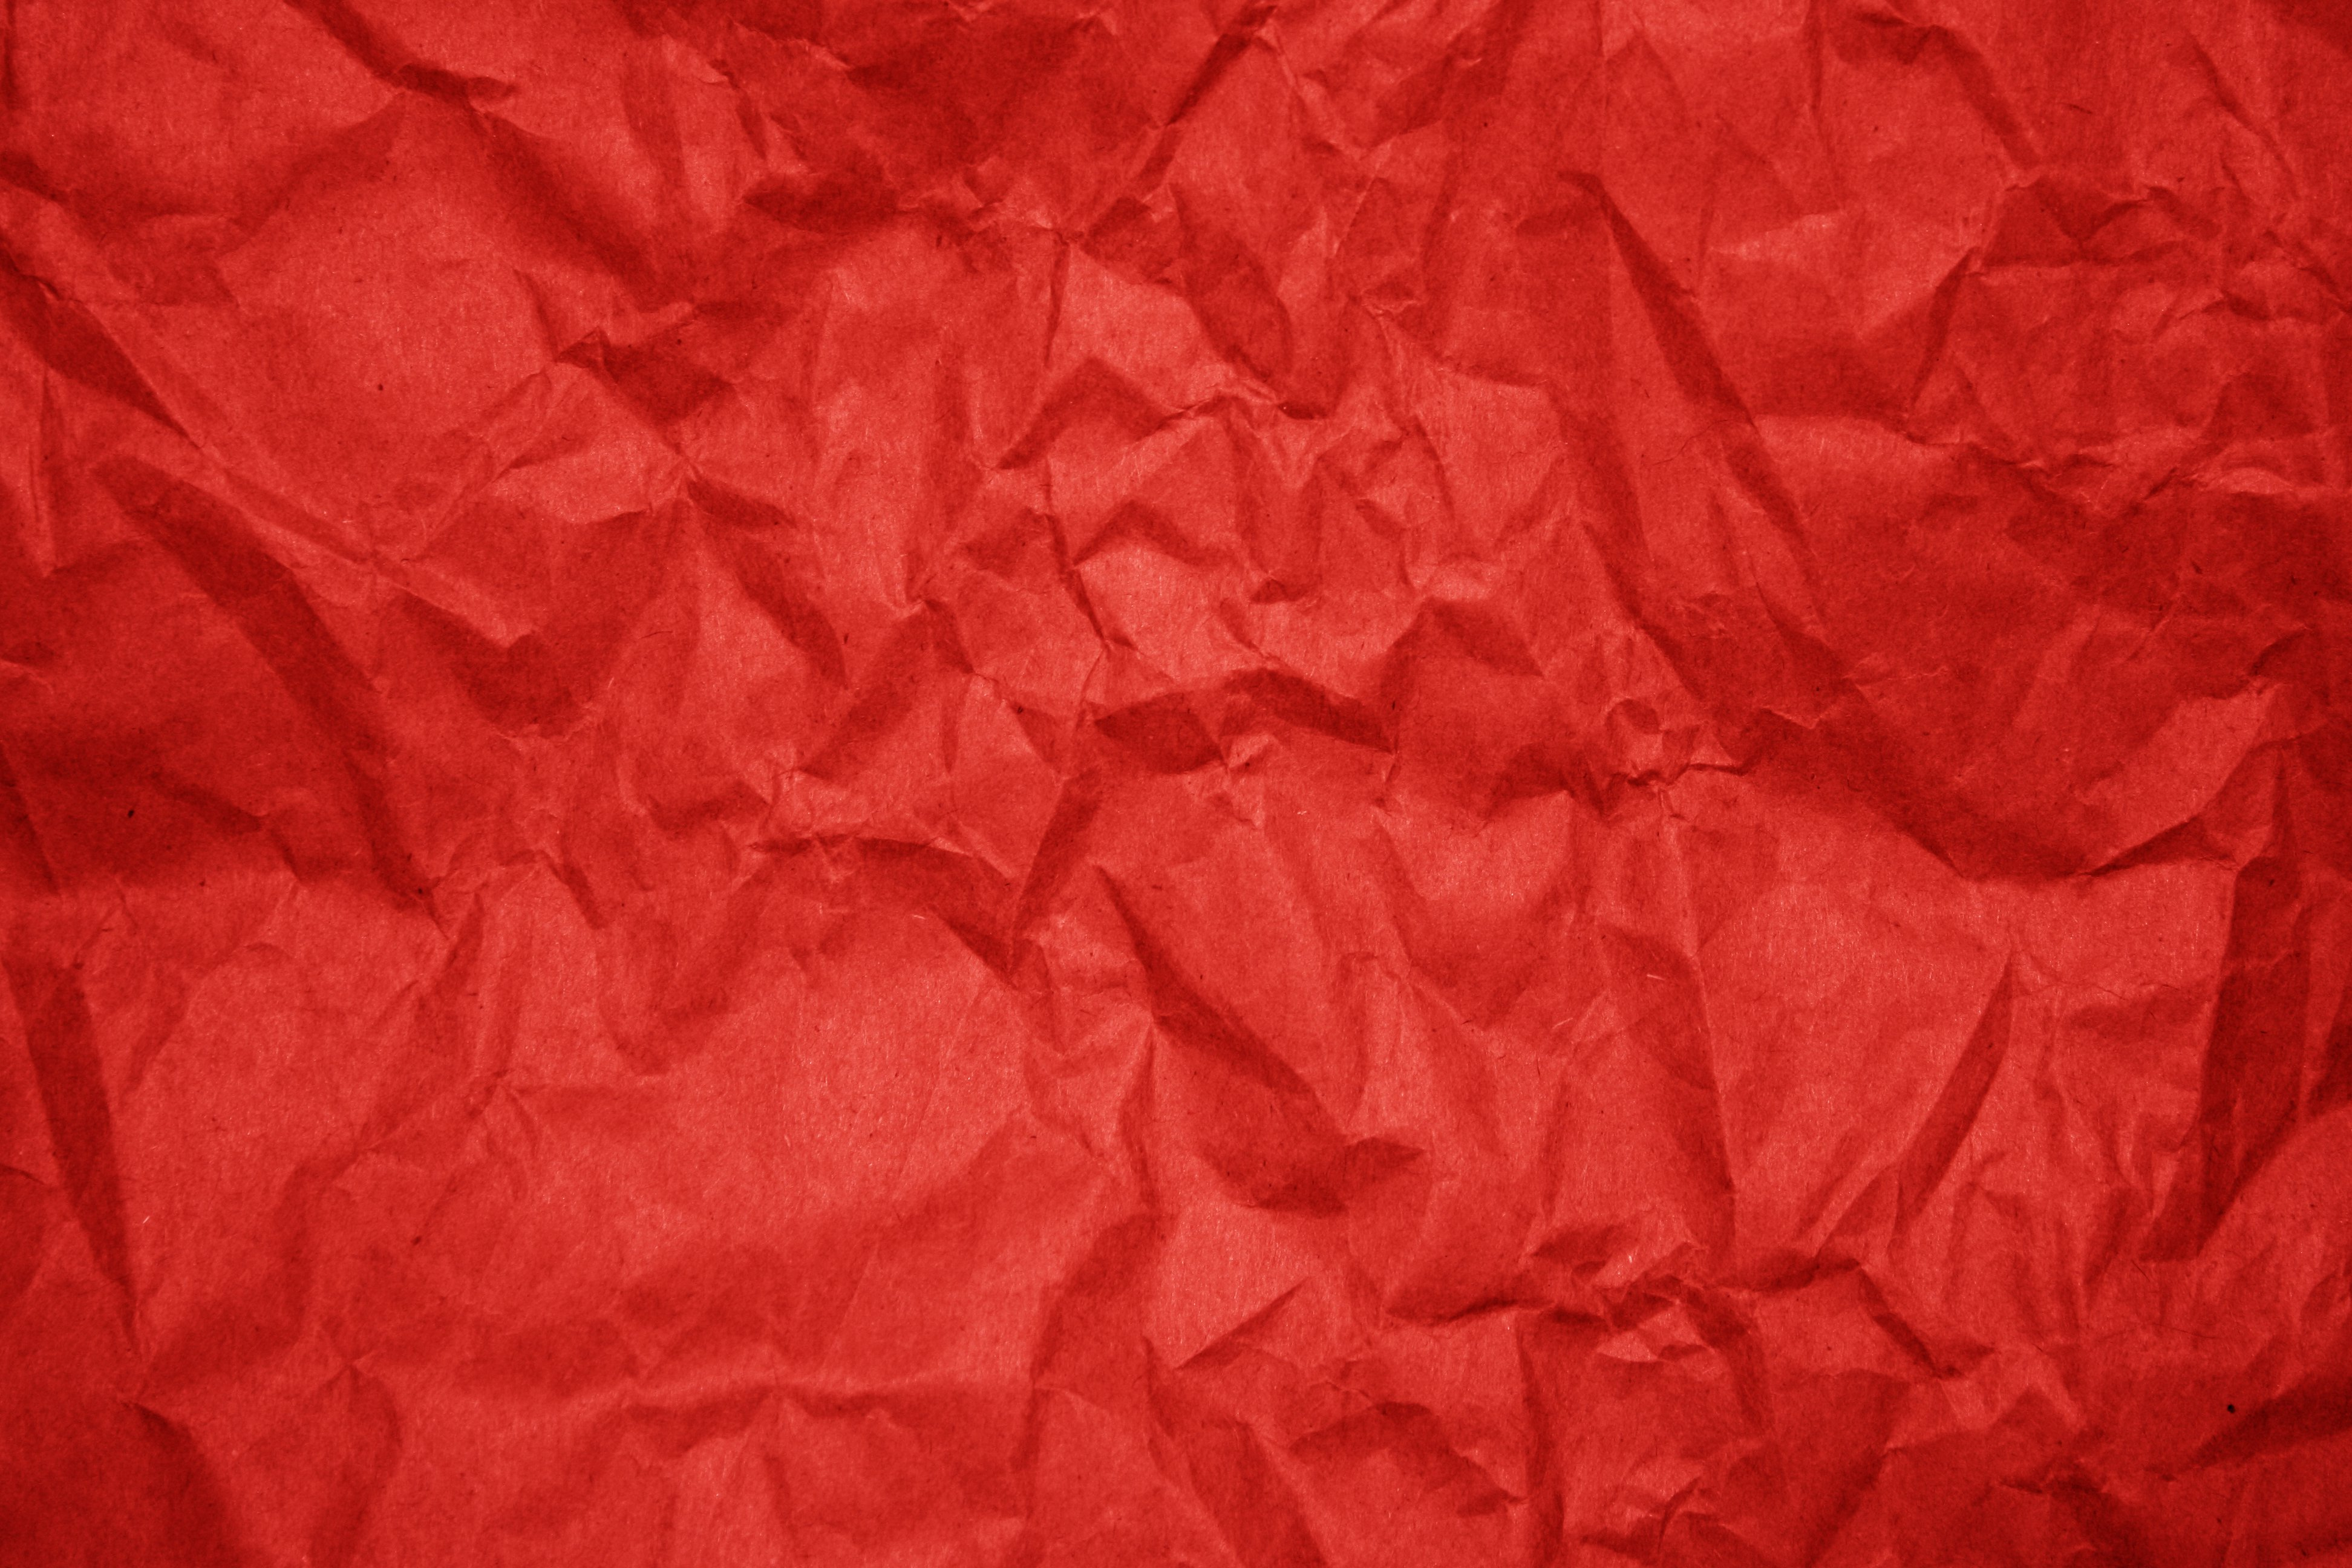 crumpled red paper texture picture free photograph